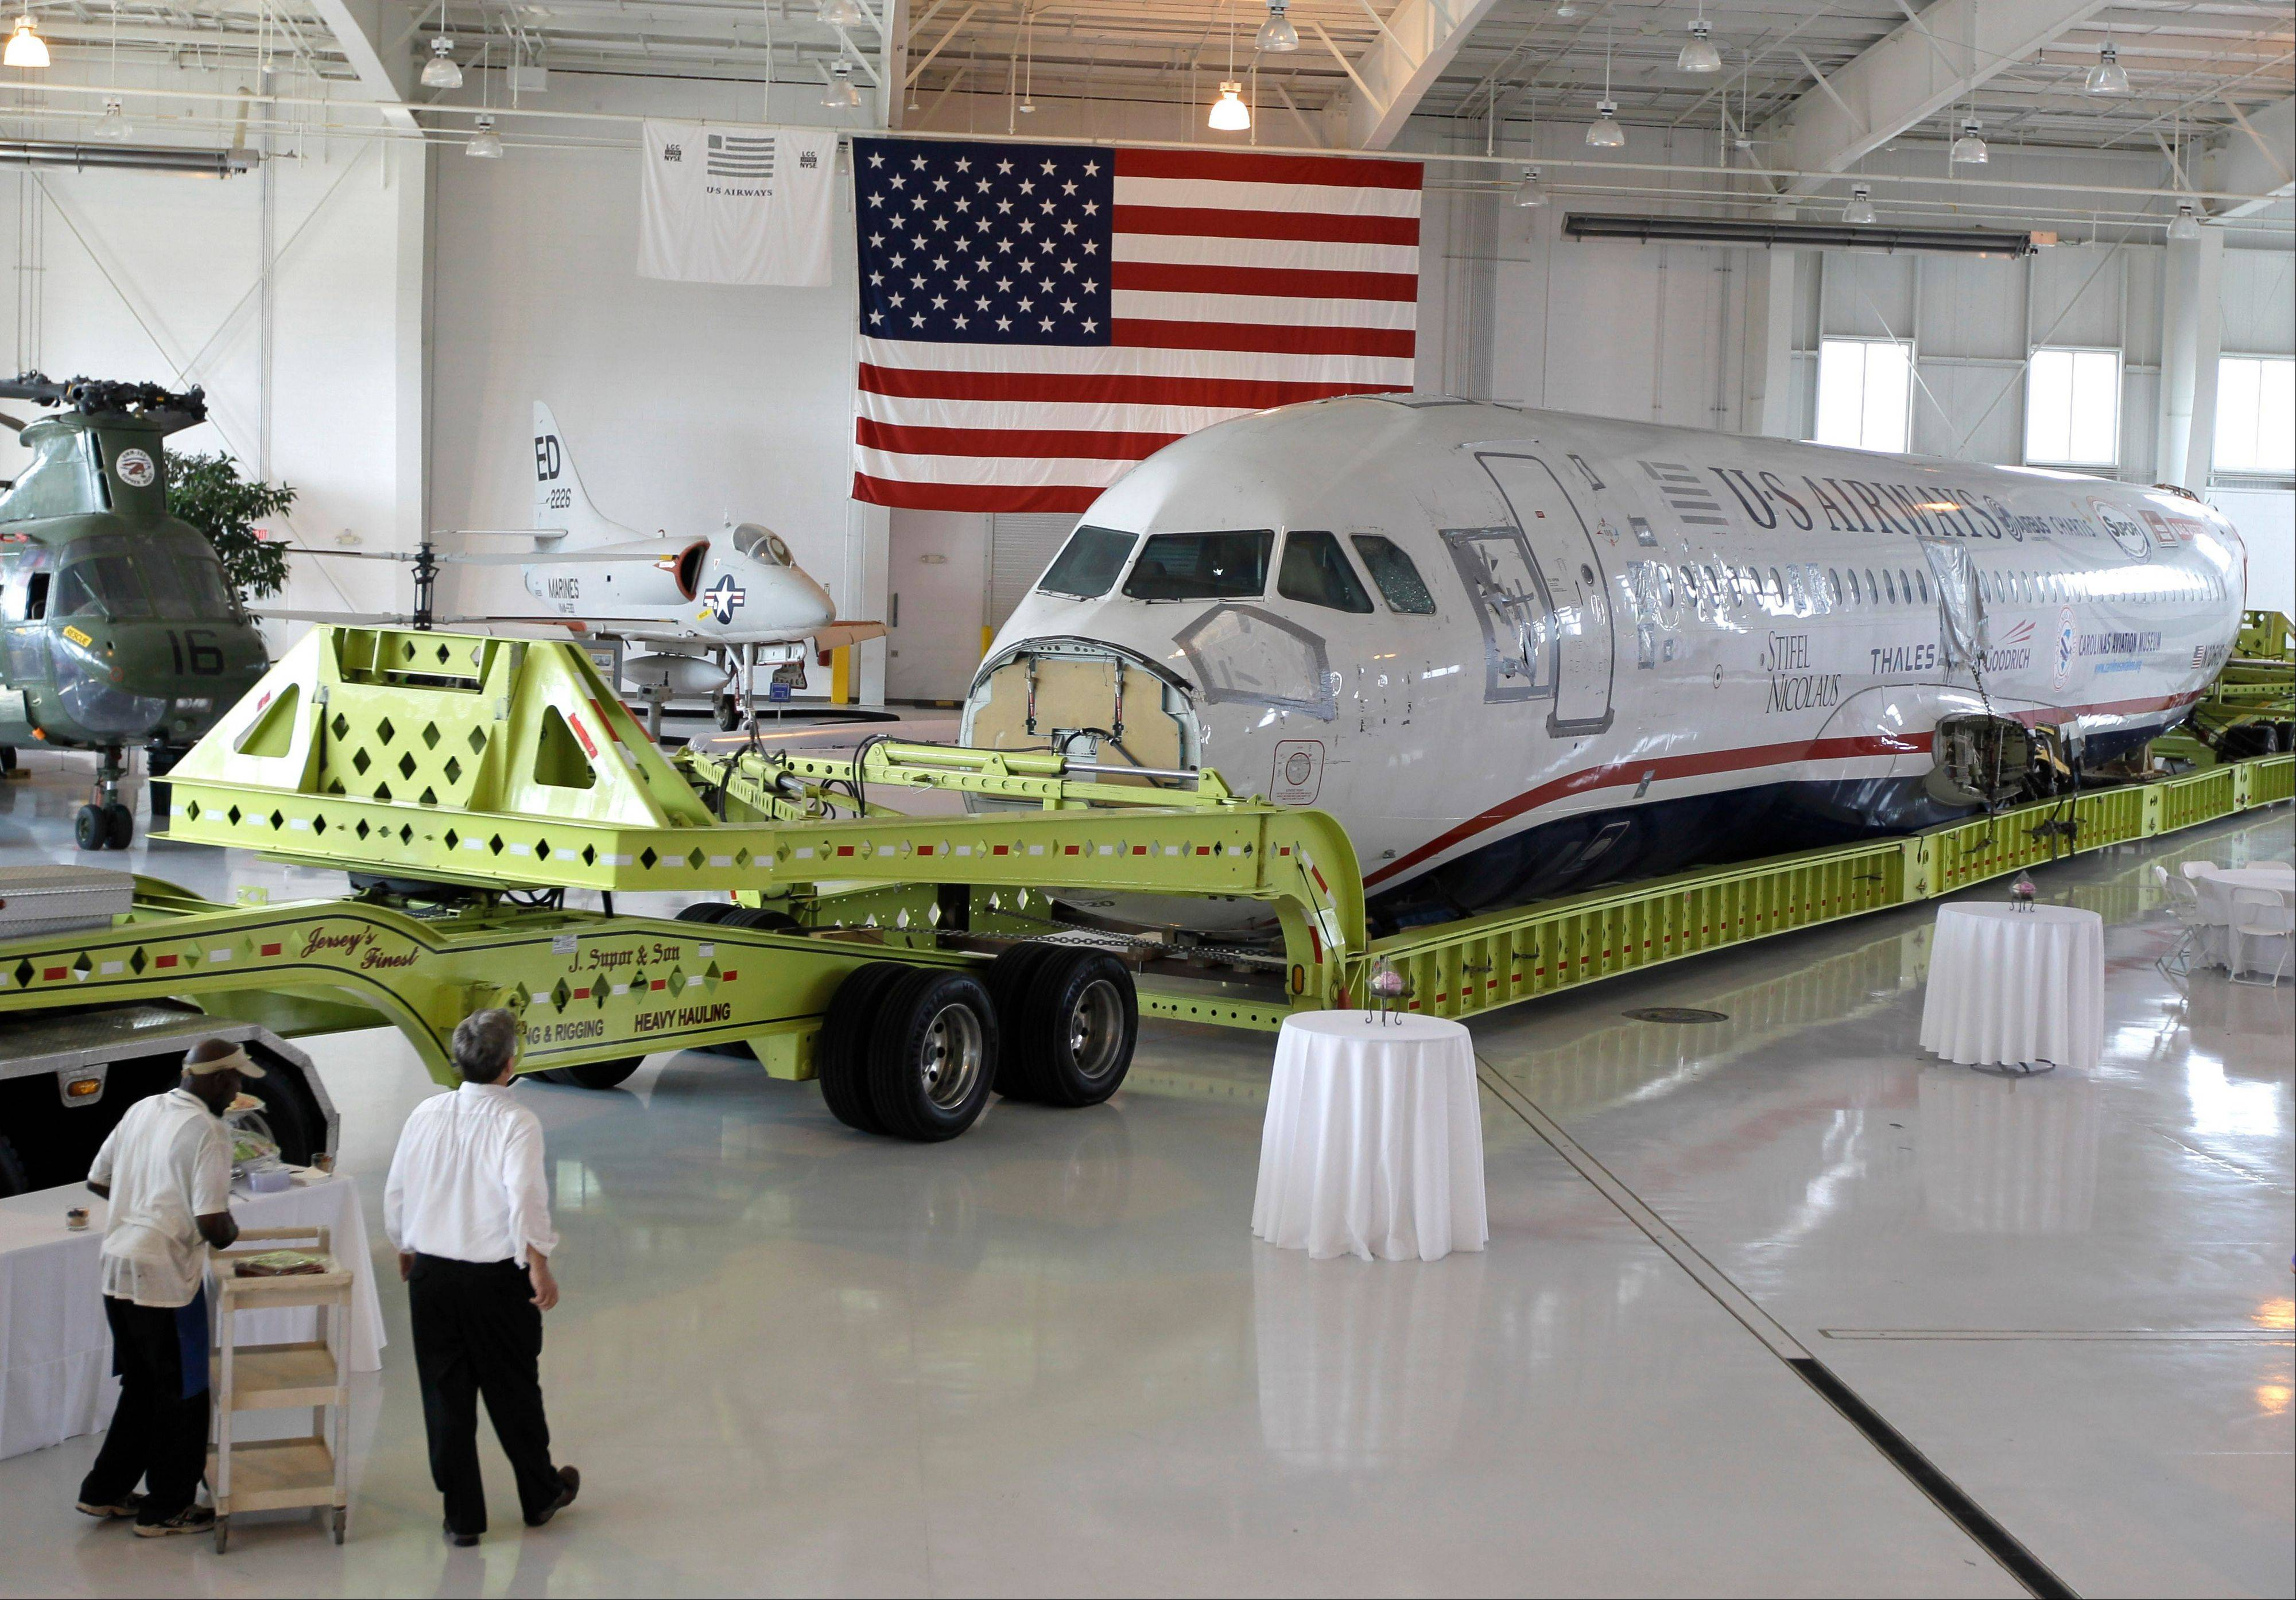 The fuselage of US Airways flight 1549 aircraft rests inside at the Carolina Aviation Museum in Charlotte, N.C. The plane that made a miraculous landing on the Hudson River two years ago will be displayed in the museum in Charlotte.